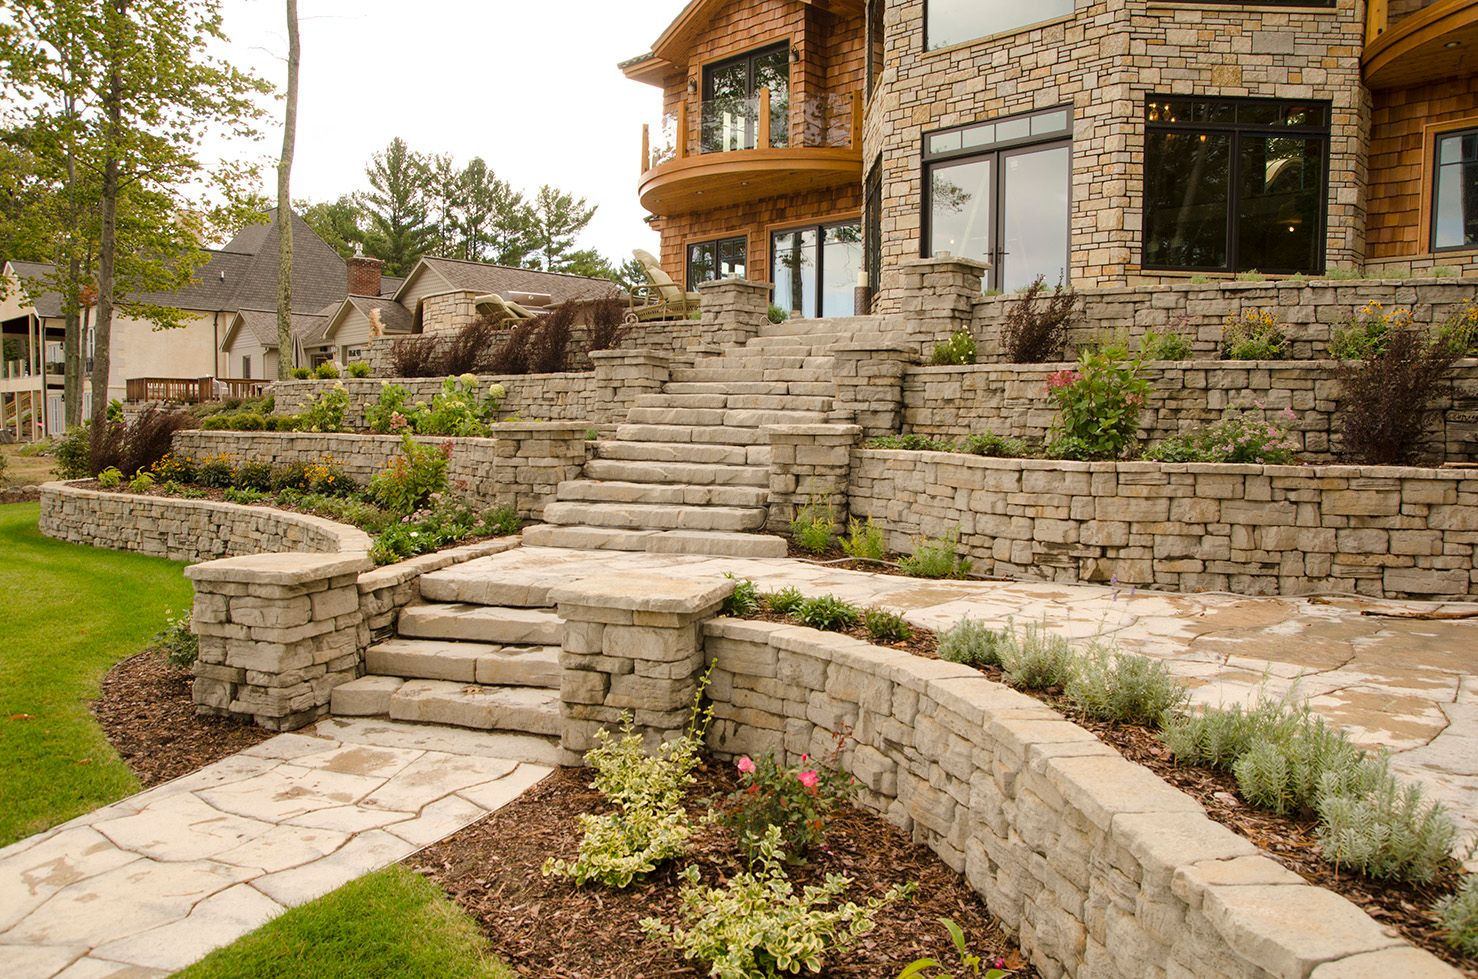 Tiered garden walls and stone stairs